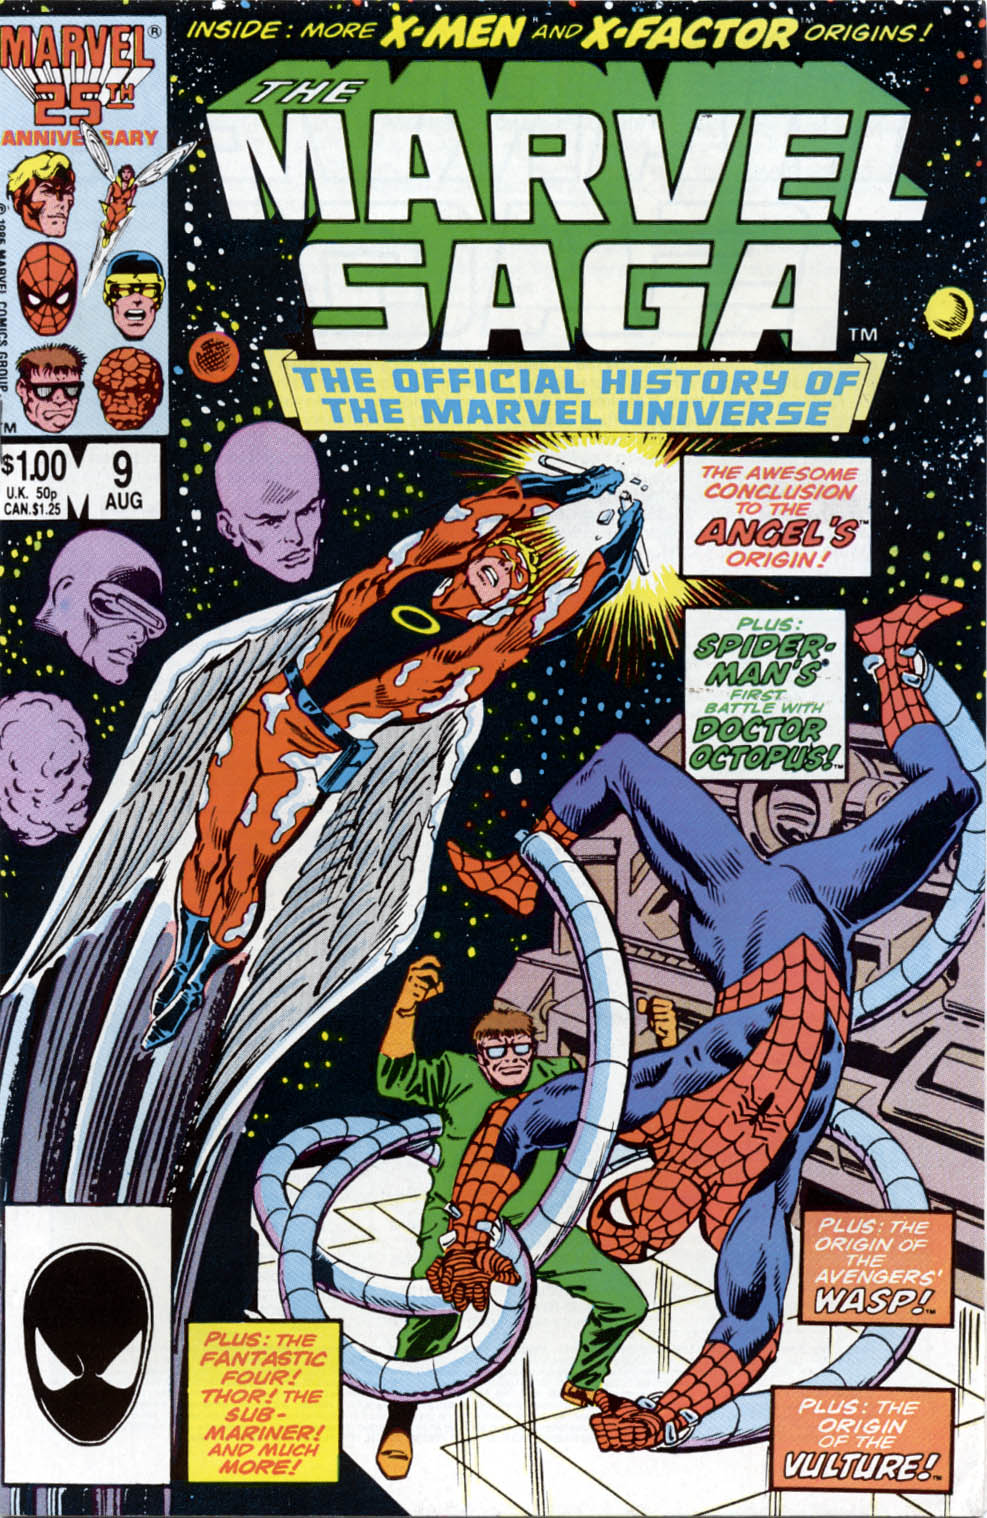 Marvel Saga: The Official History of the Marvel Universe issue 9 - Page 1